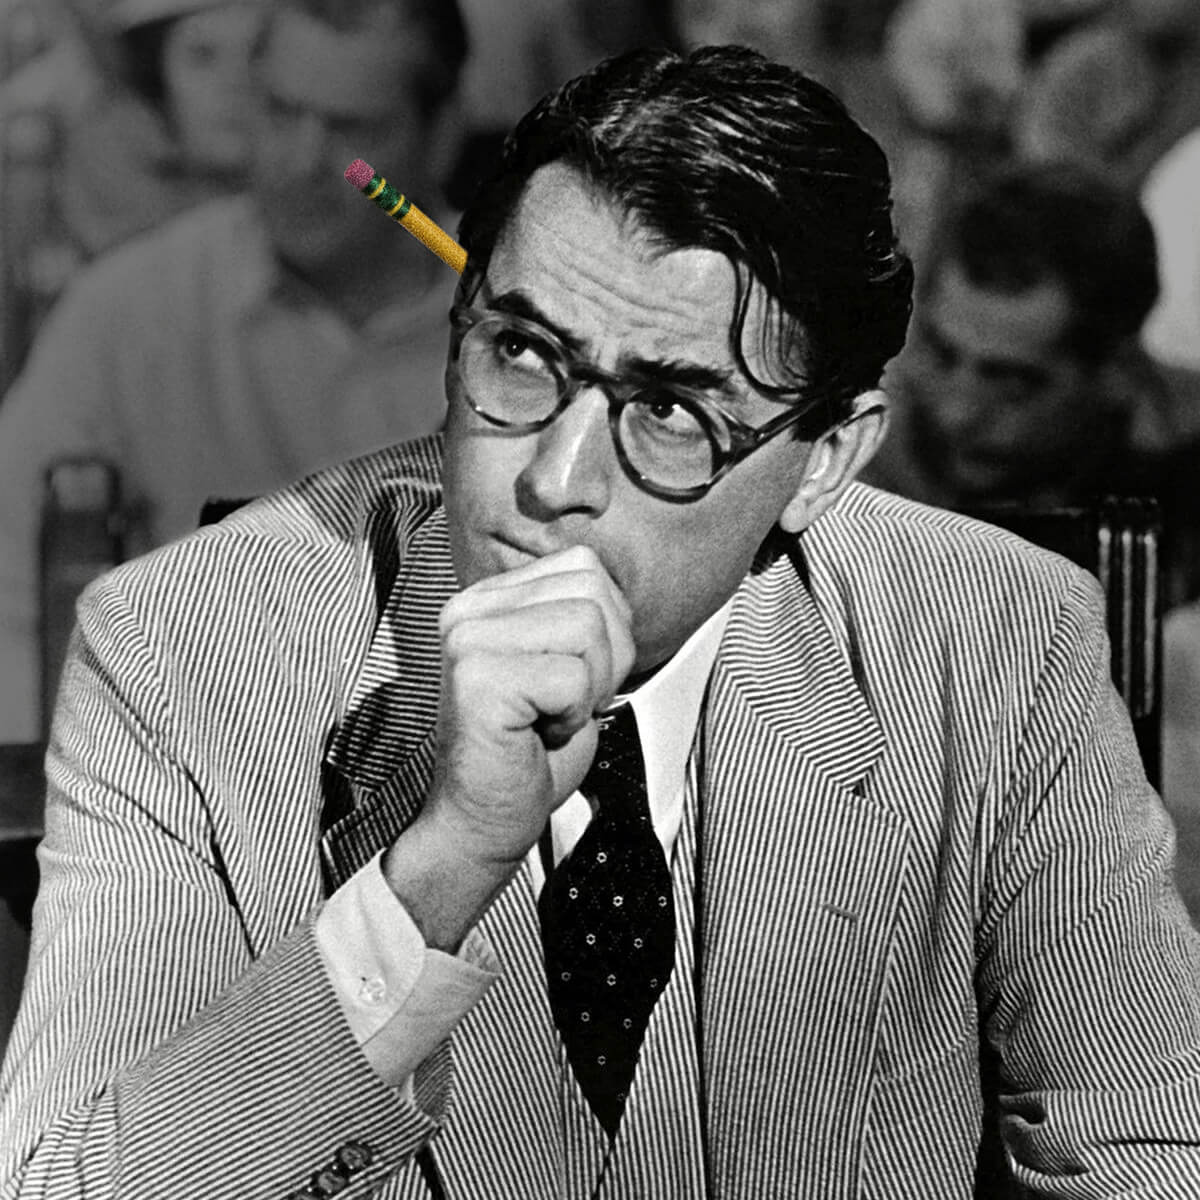 Atticus Finch with Dixon No. 2 Yellow Pencil Behind His Ear